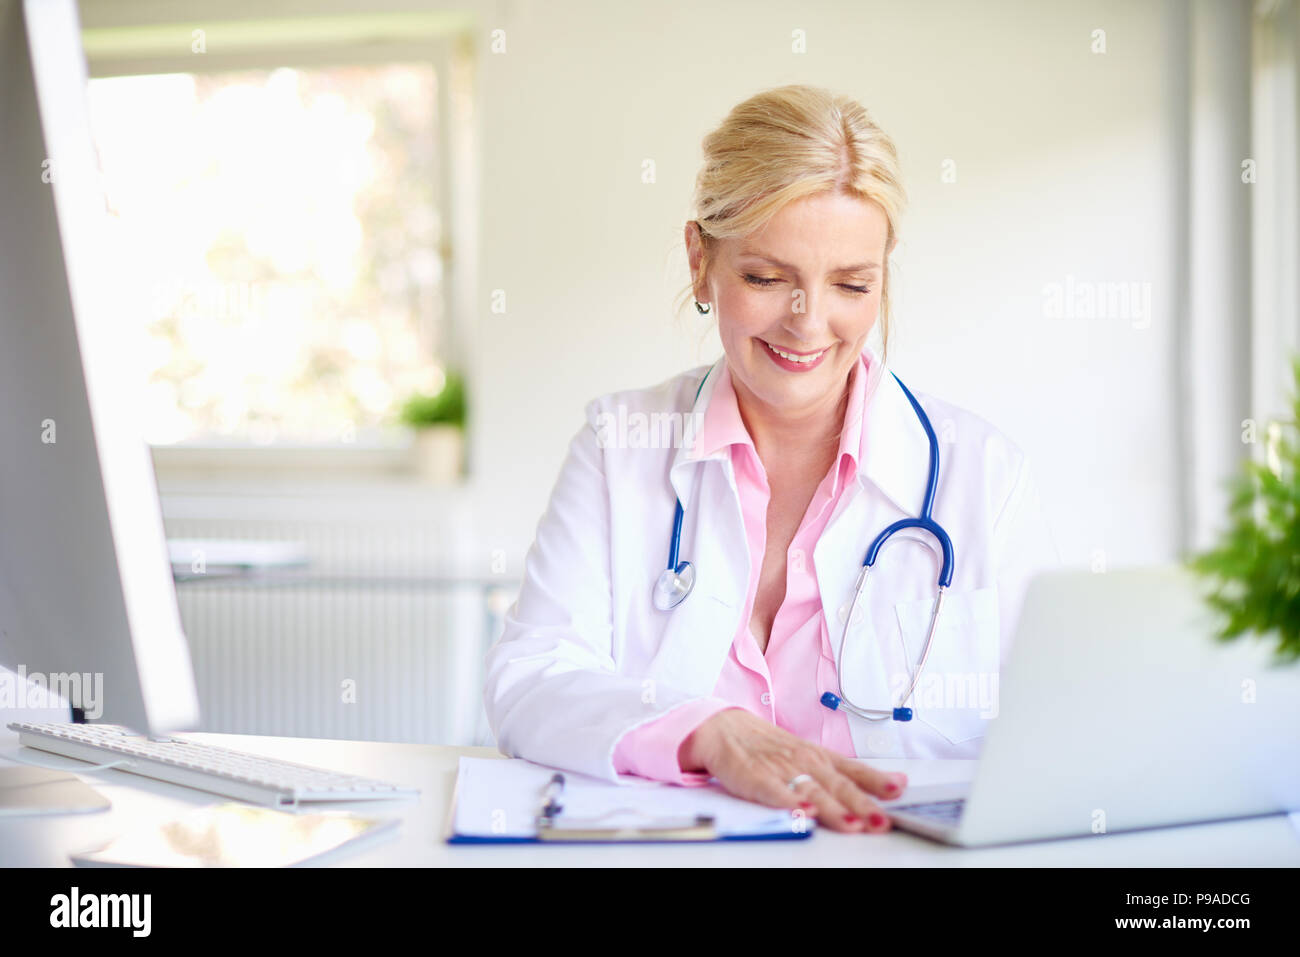 Close-up shot of smiling elderly female doctor using her laptop and writing something while sitting at desk at the doctor's office. - Stock Image